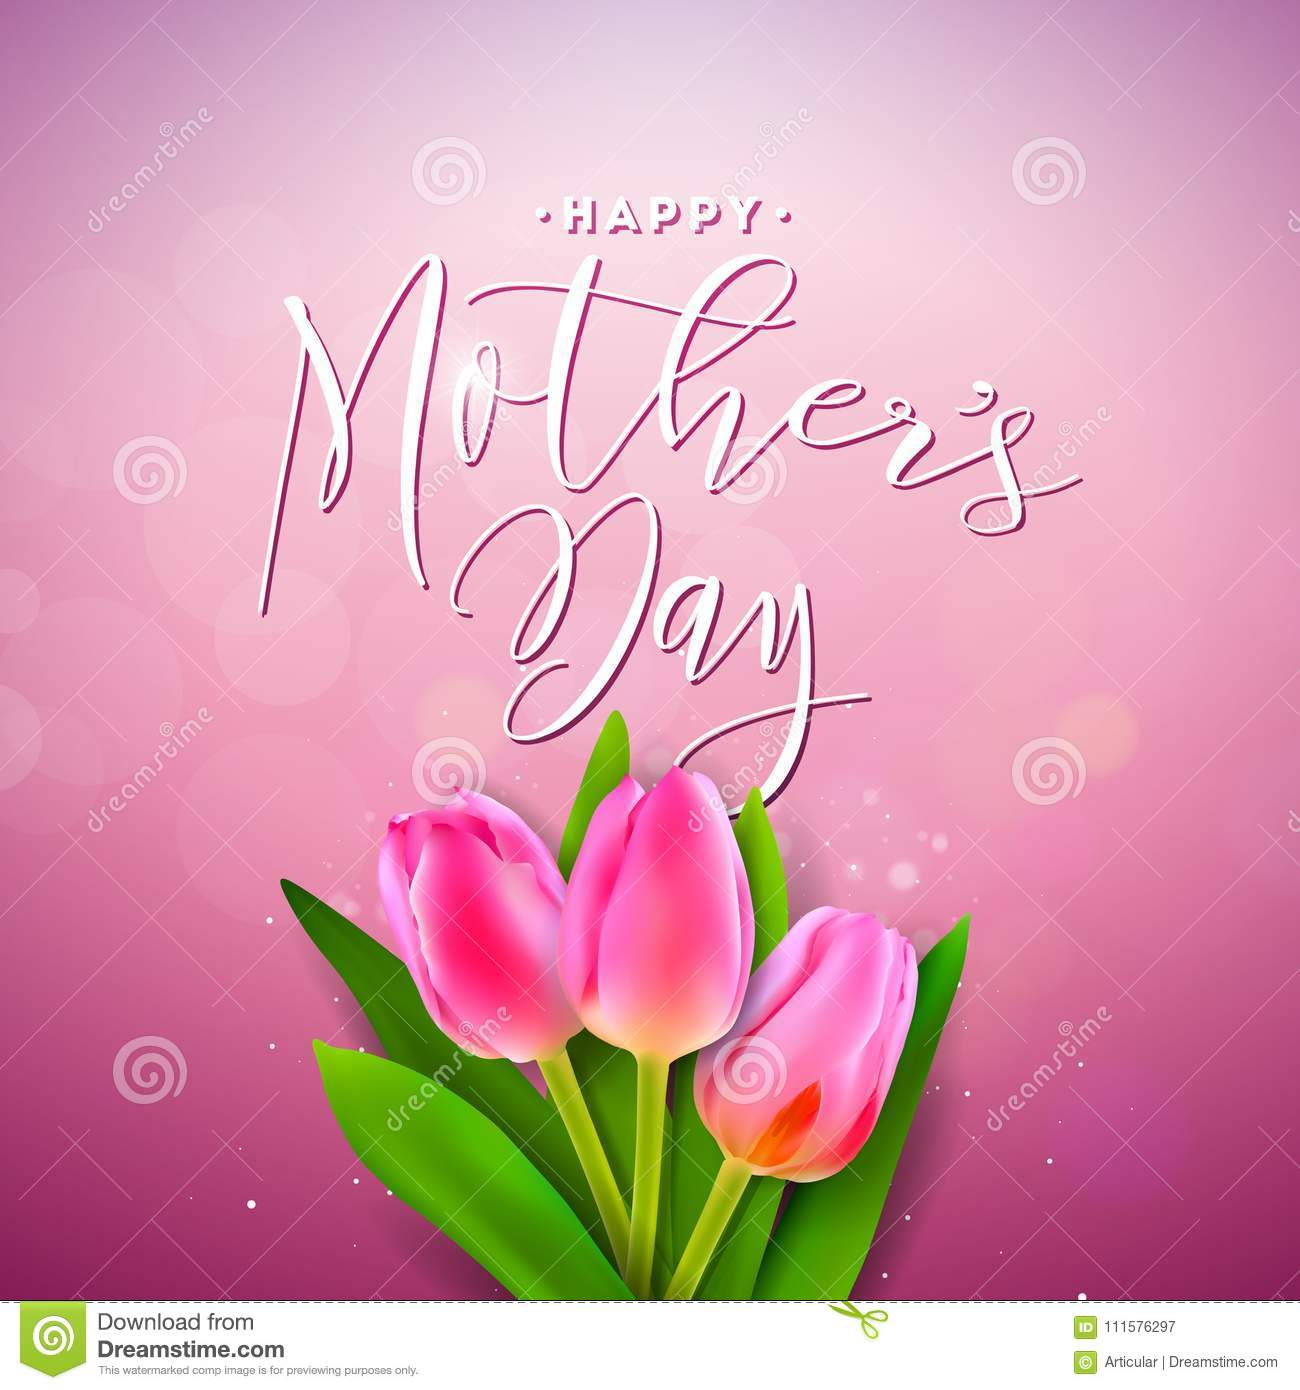 Pink Mothers Day Flyer Template For Free Download On Pngtree: Happy Mothers Day Greeting Card With Flower On Pink